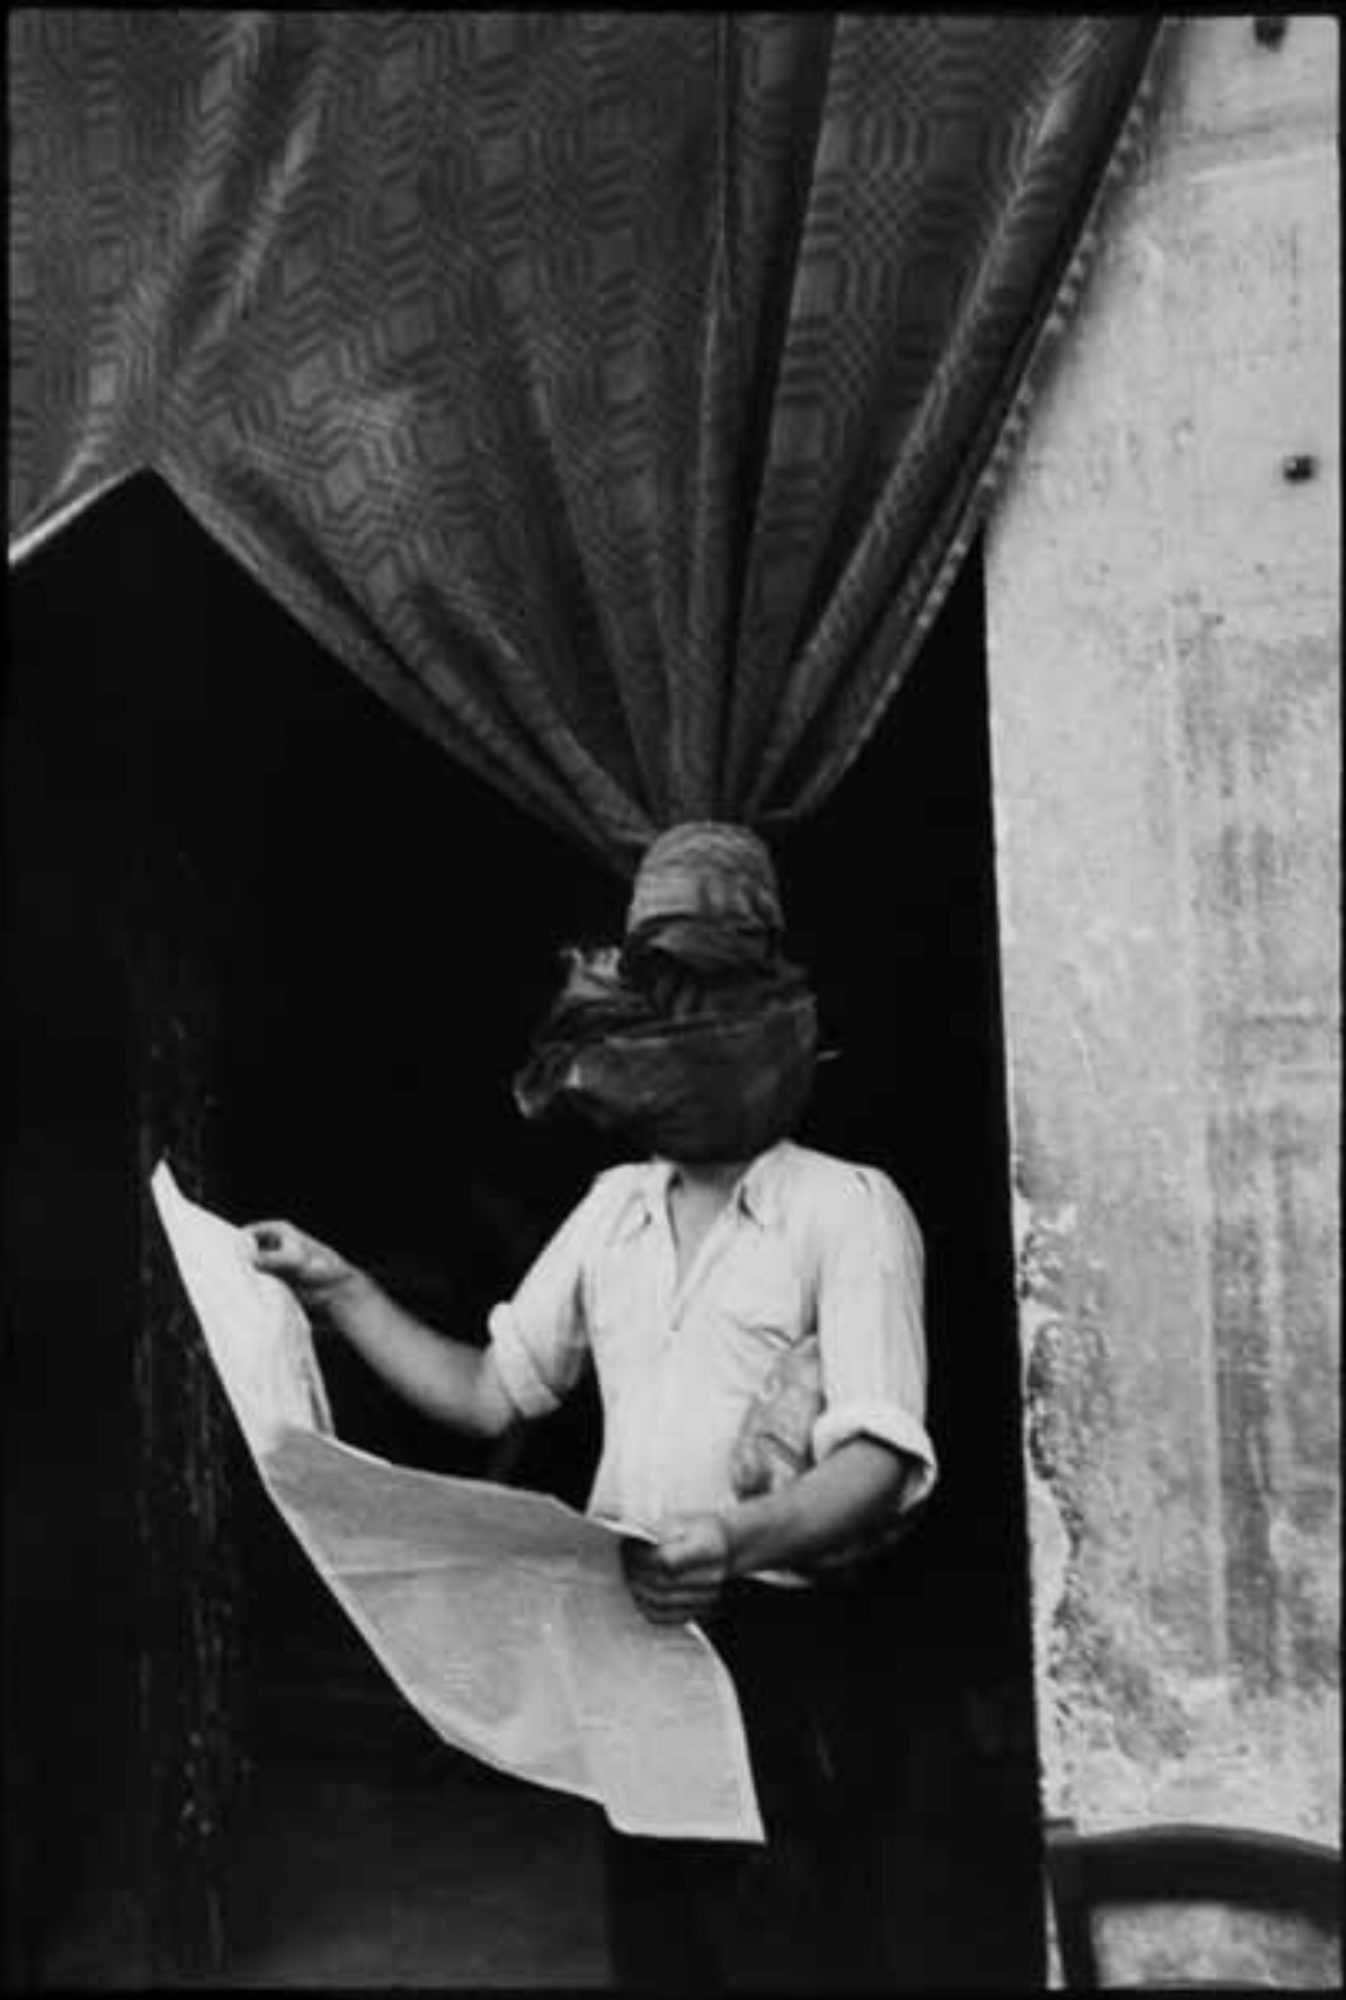 Henri Cartier Bresson, the knot overlapped with the head of the man.